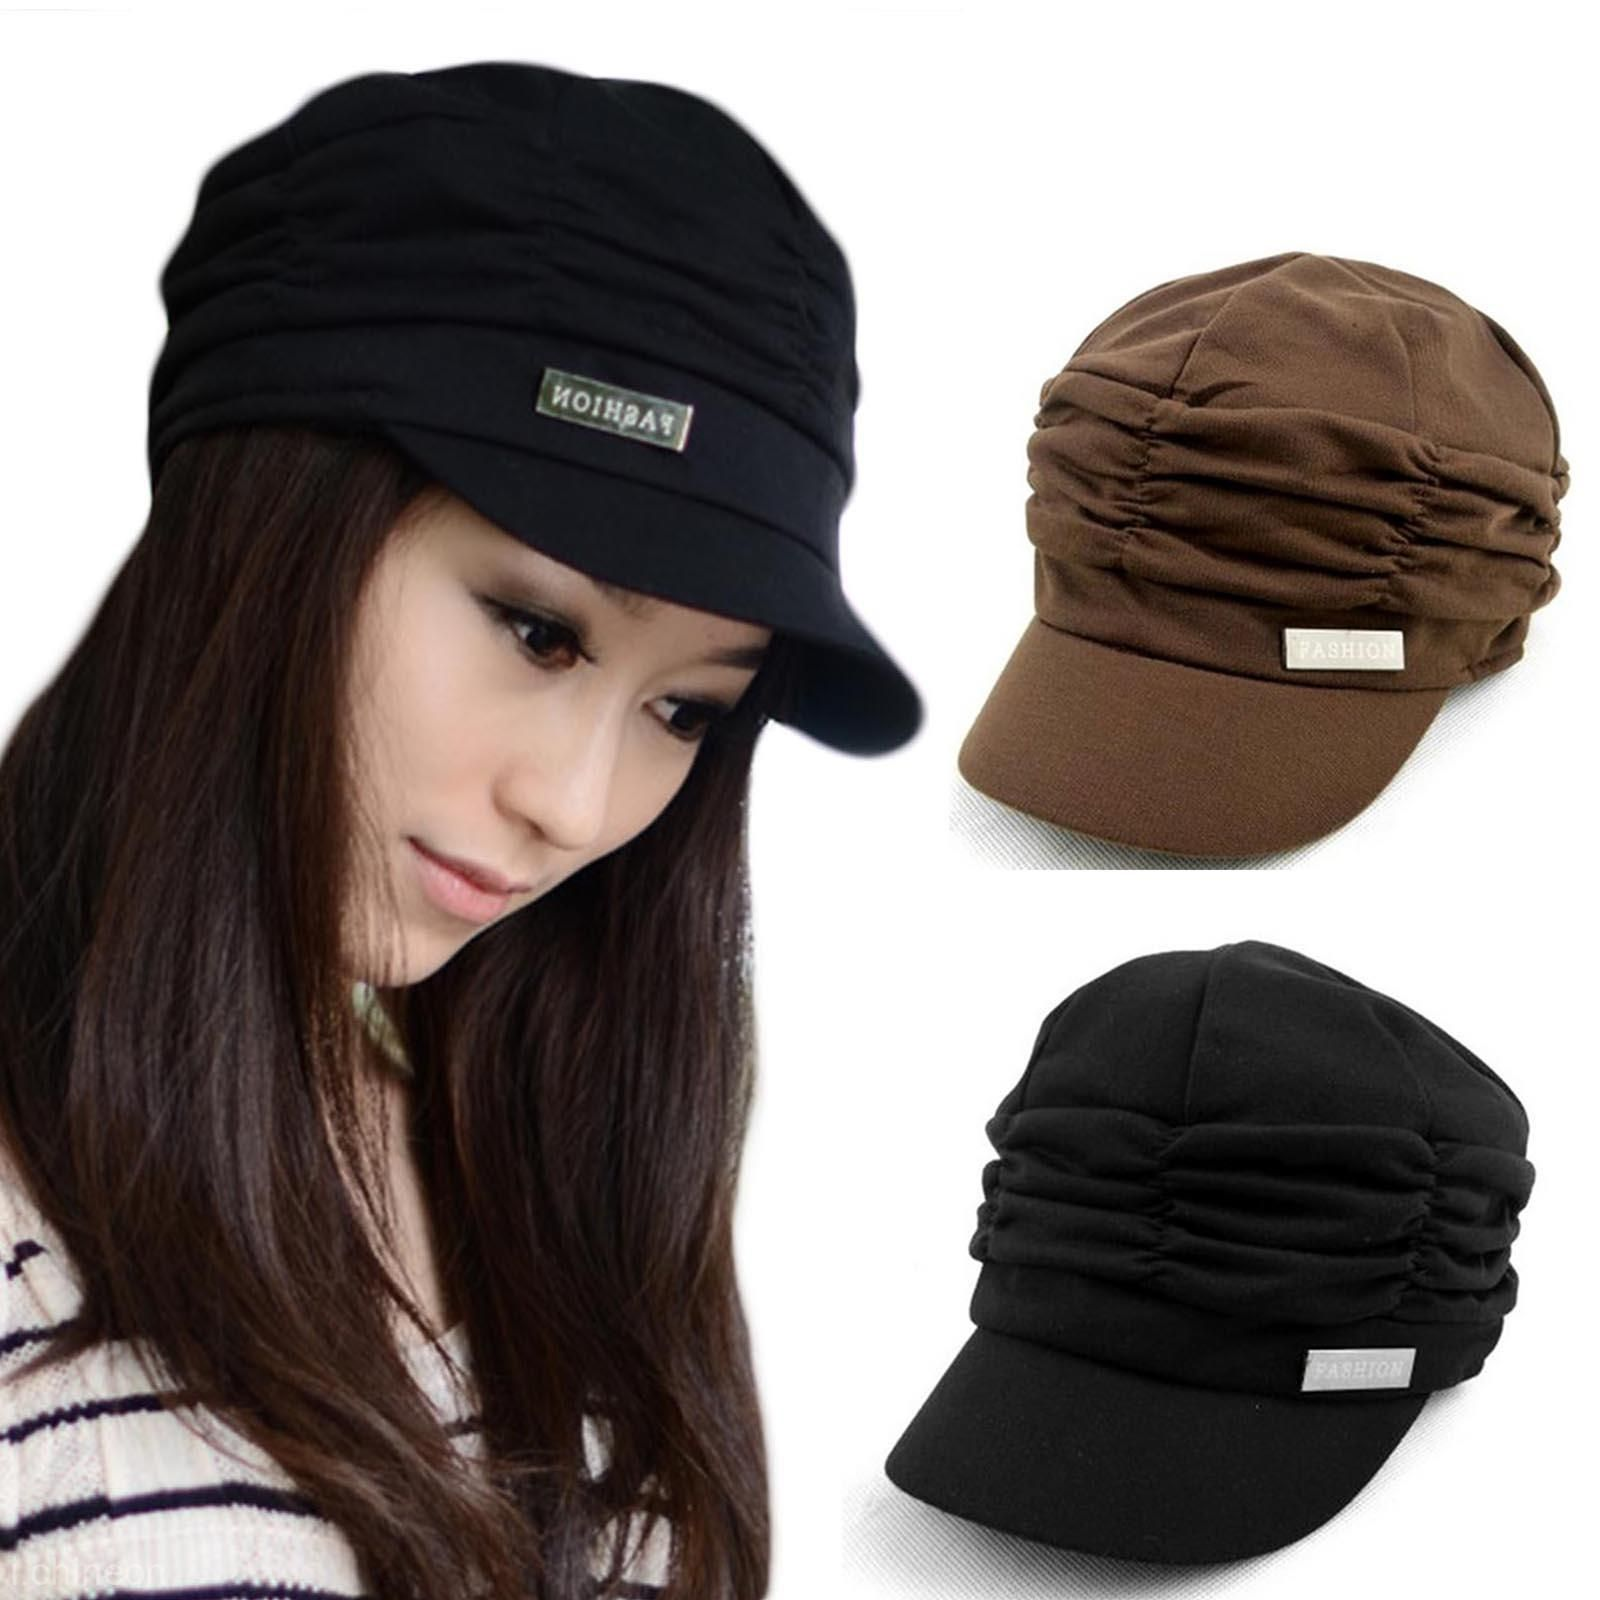 786fb89d40e Women Girl Fashion Pleated Layers Beret Beanie Hat Peaked Brim Cap Sun  Protector